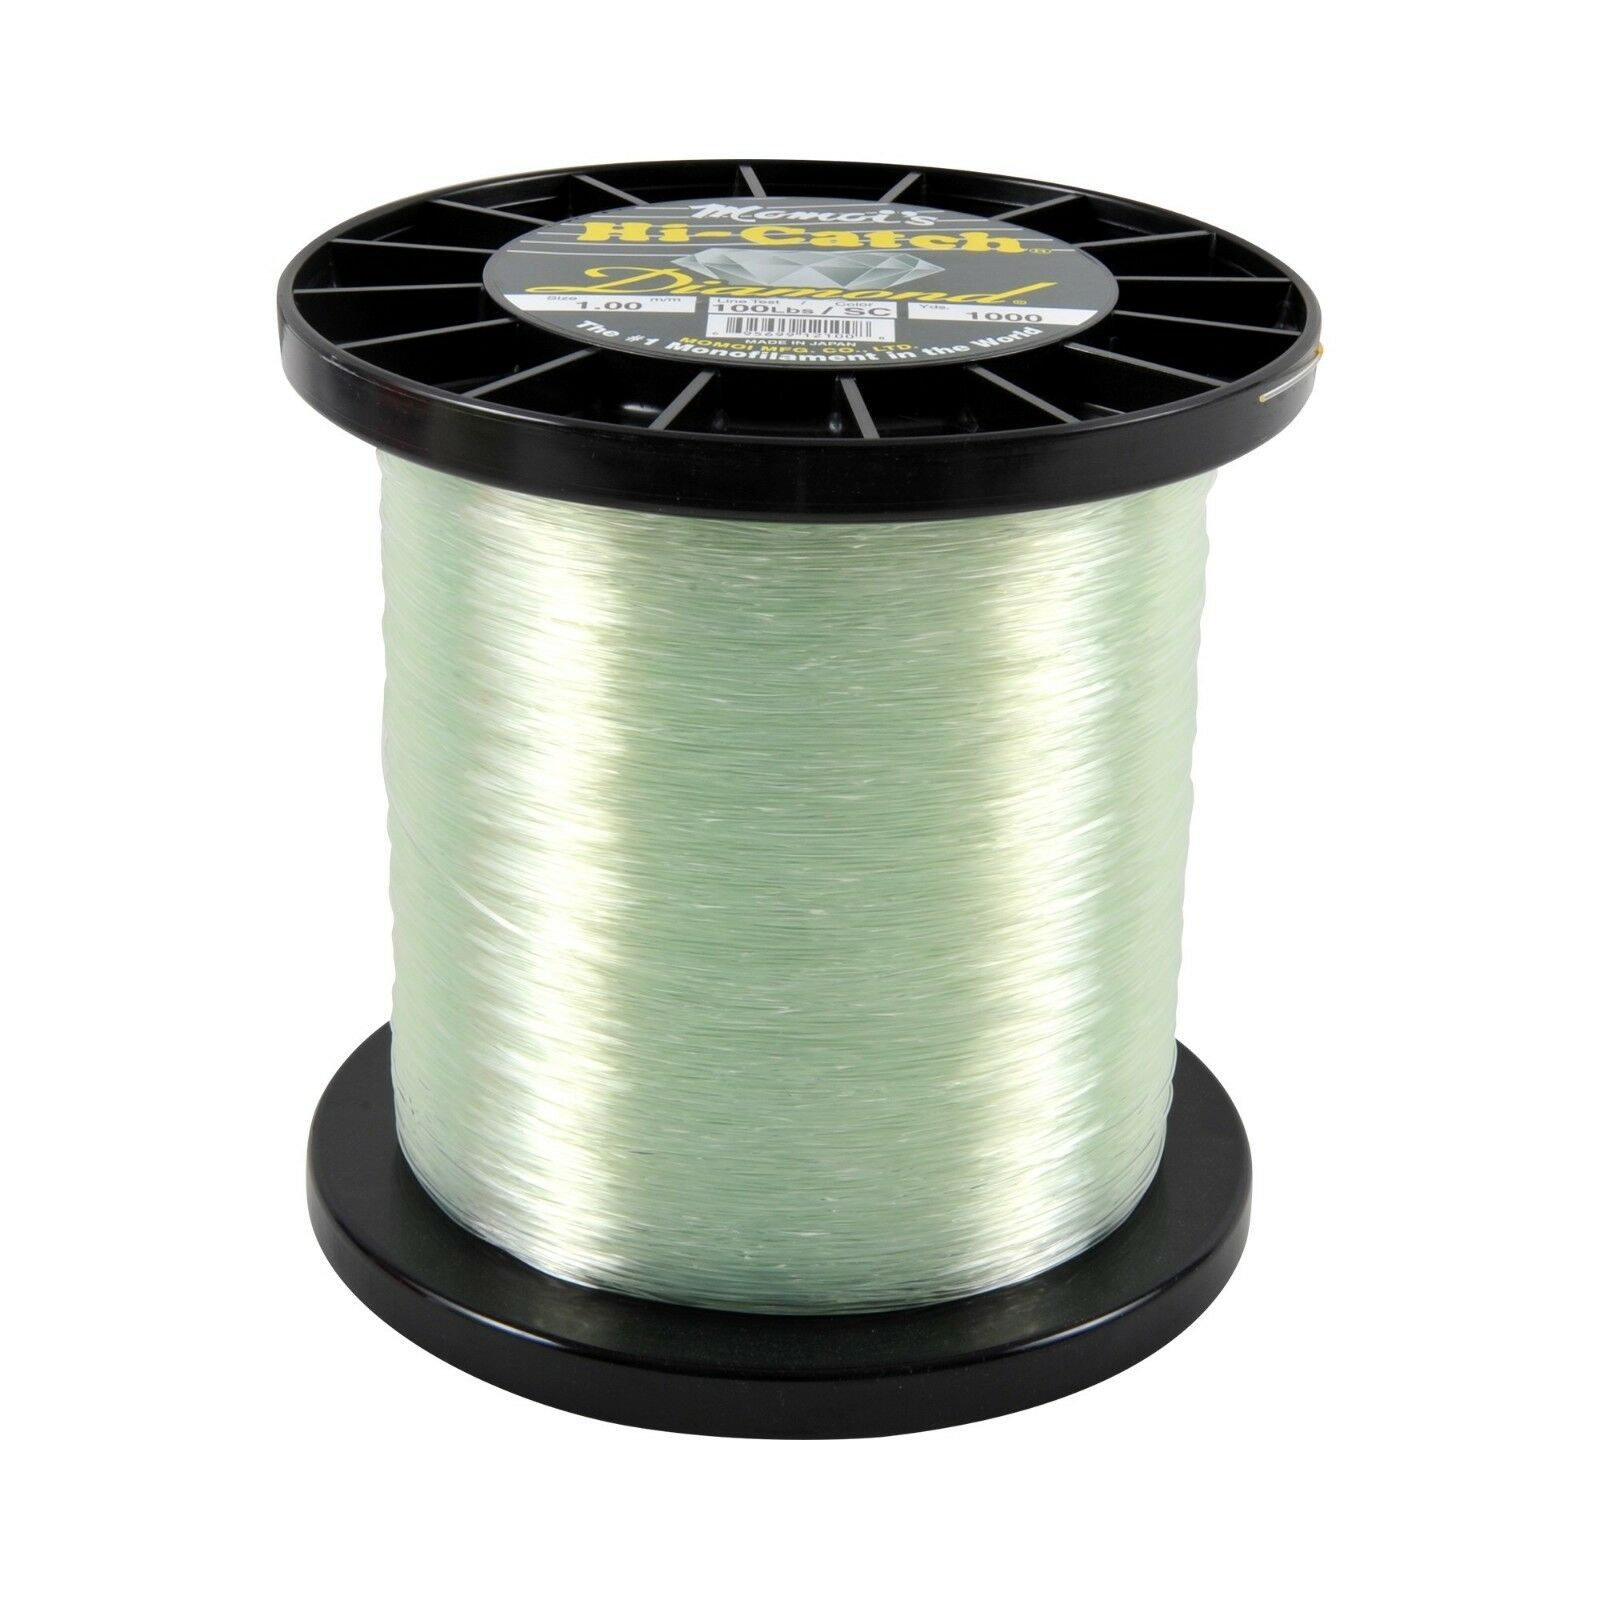 Momoi Diamond Monofilament Line-1000 Yards - Super  Clear - Free Fast Ship  looking for sales agent